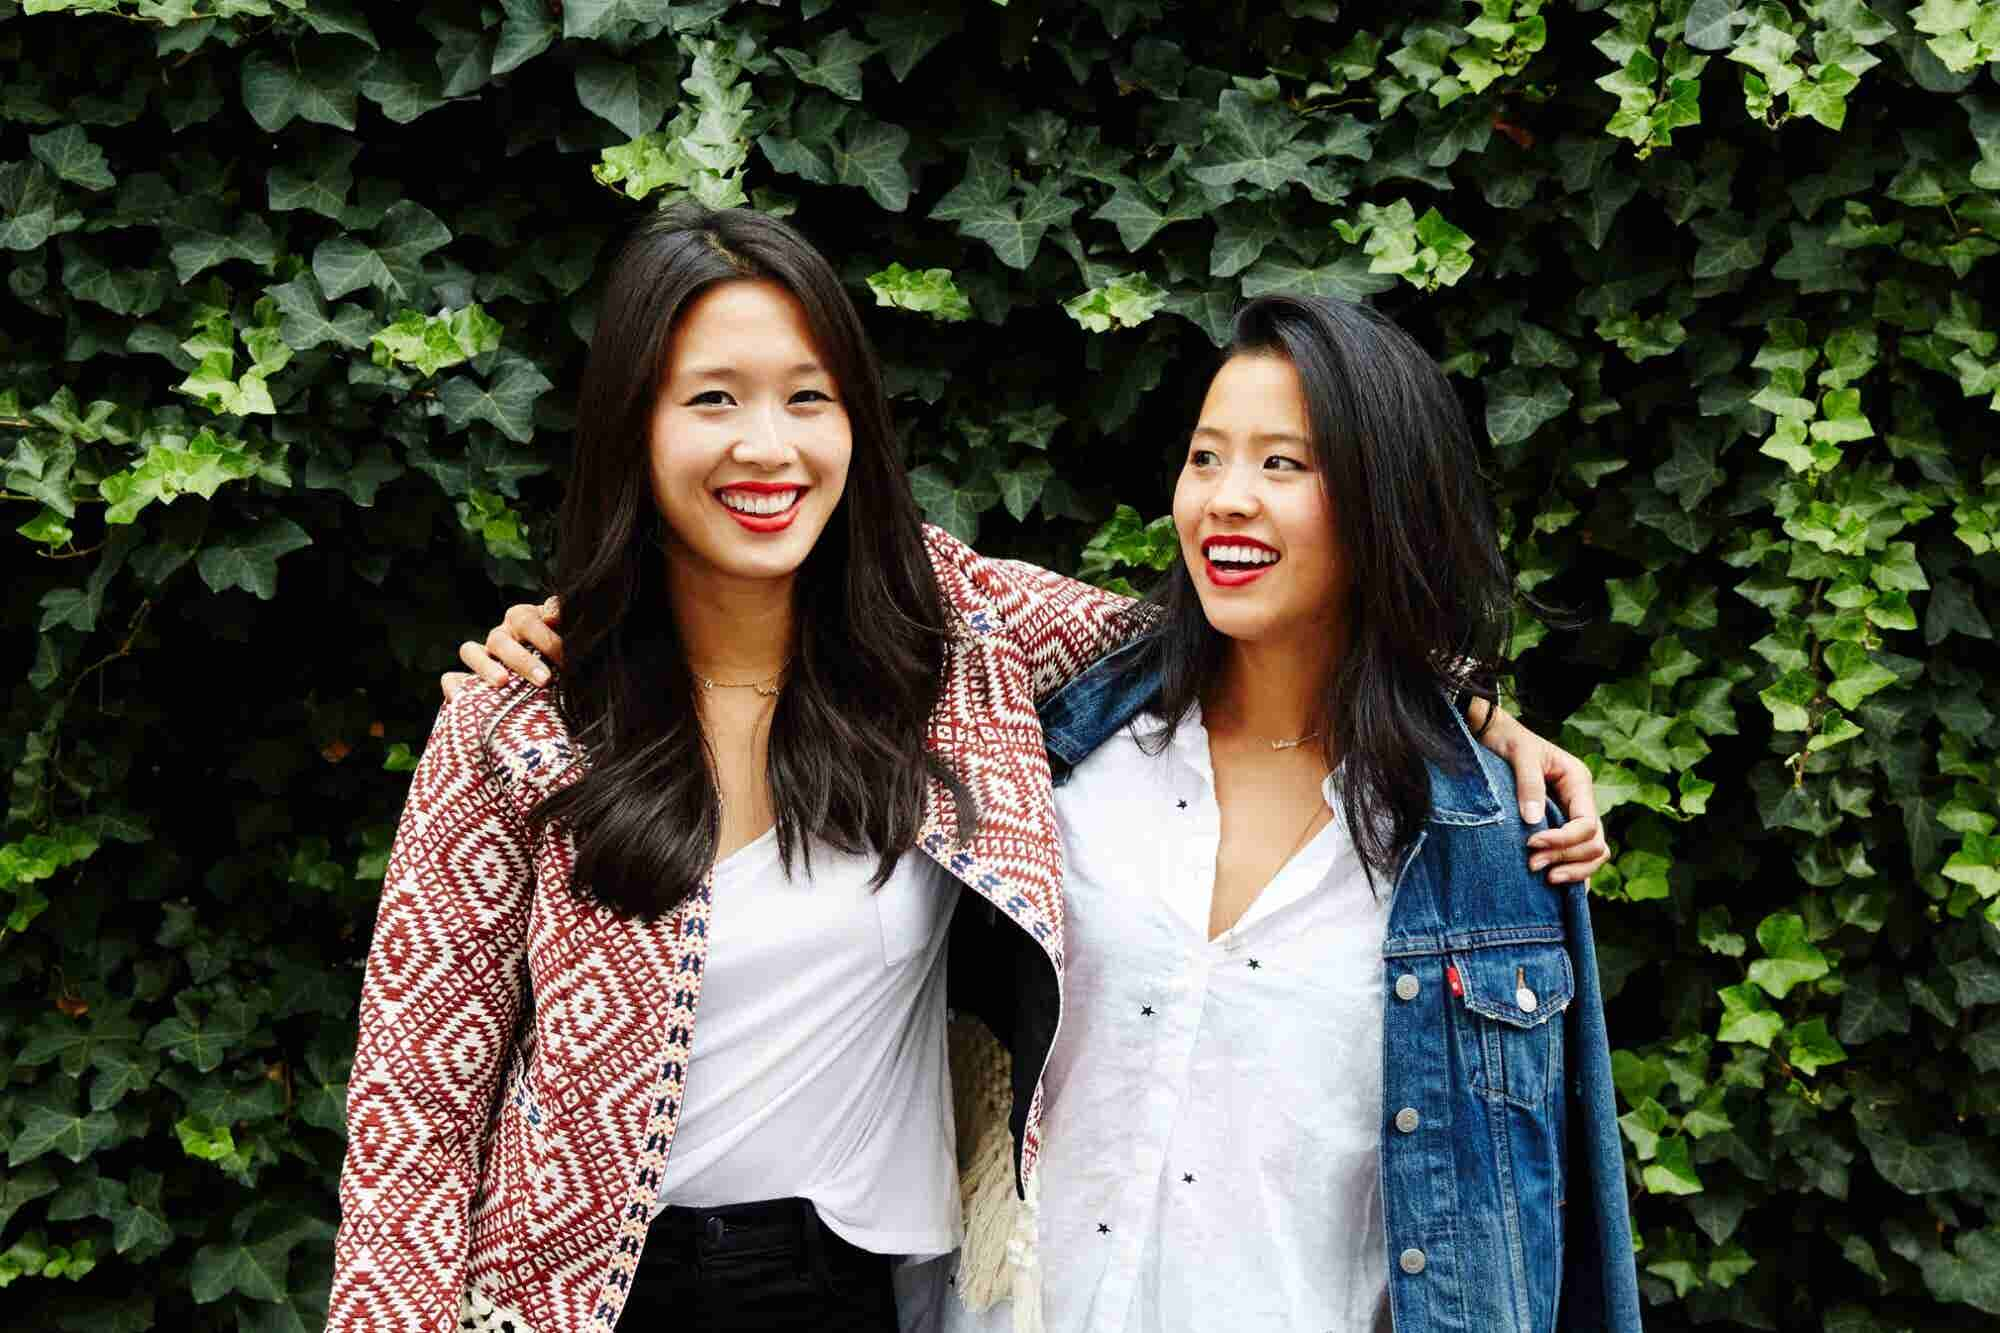 These Sisters Left Dream Jobs to Pursue Their Love of Dumplings. Now They're Cooking up a Delicious NYC Restaurant Empire.